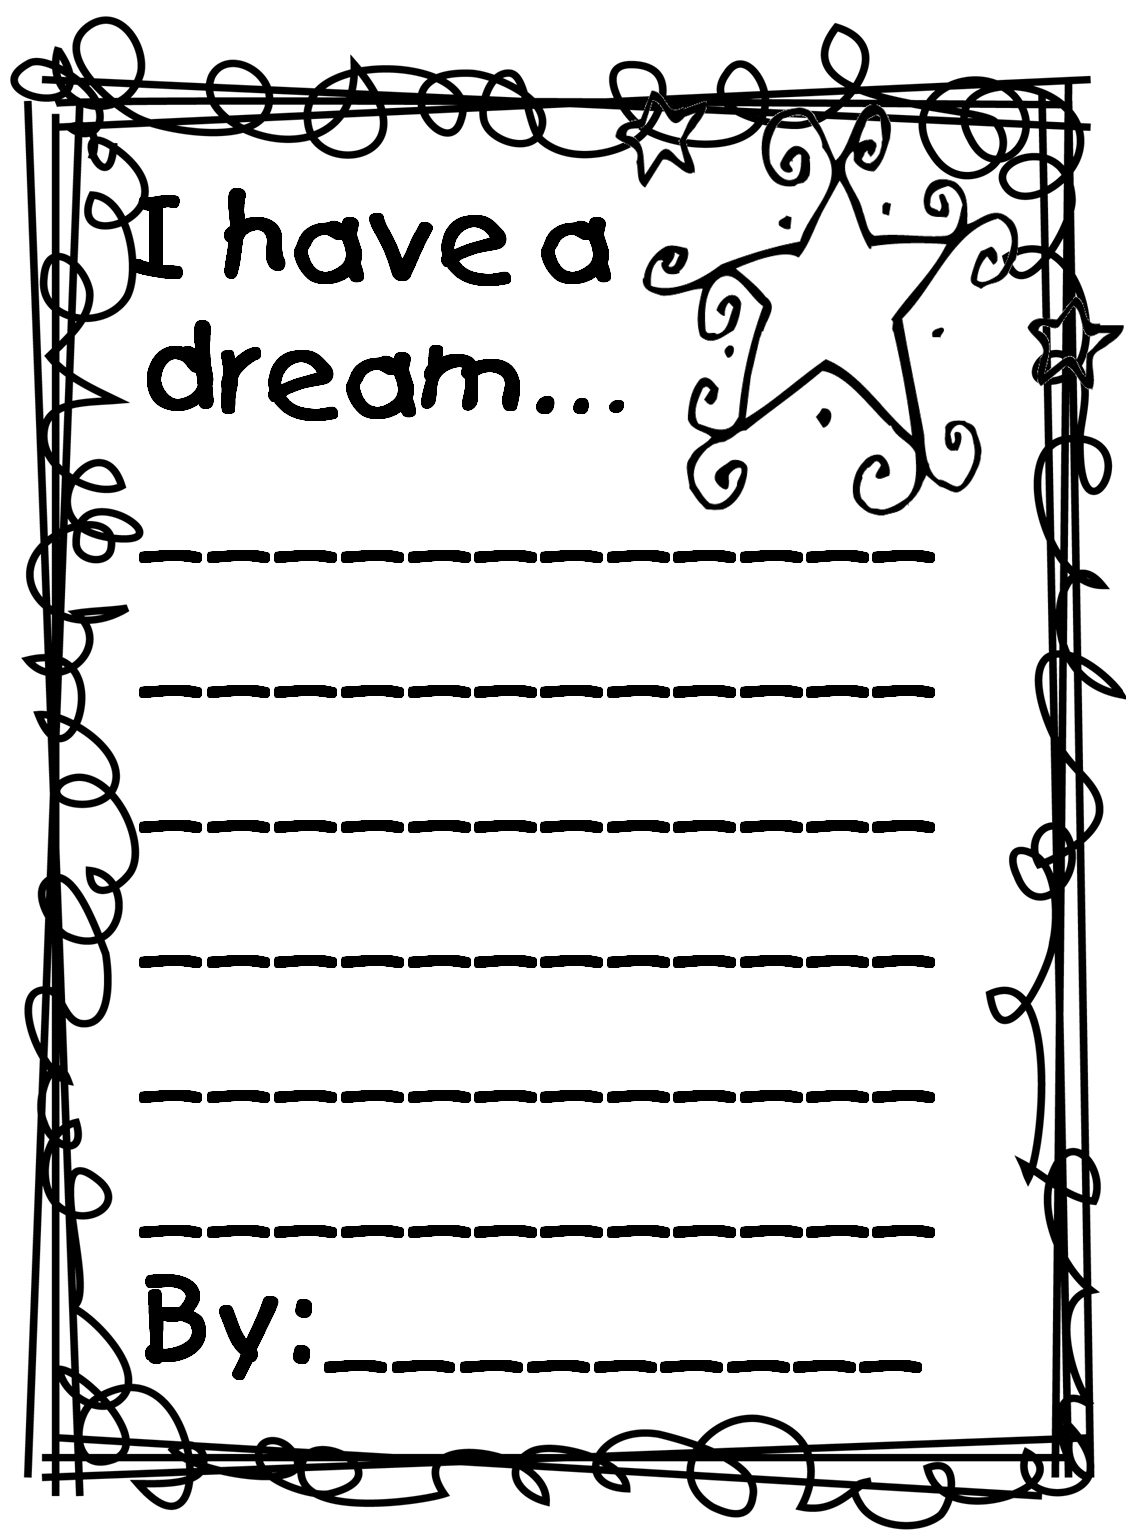 Martin Luther King Jr Coloring Pages And Worksheets Best For Kids